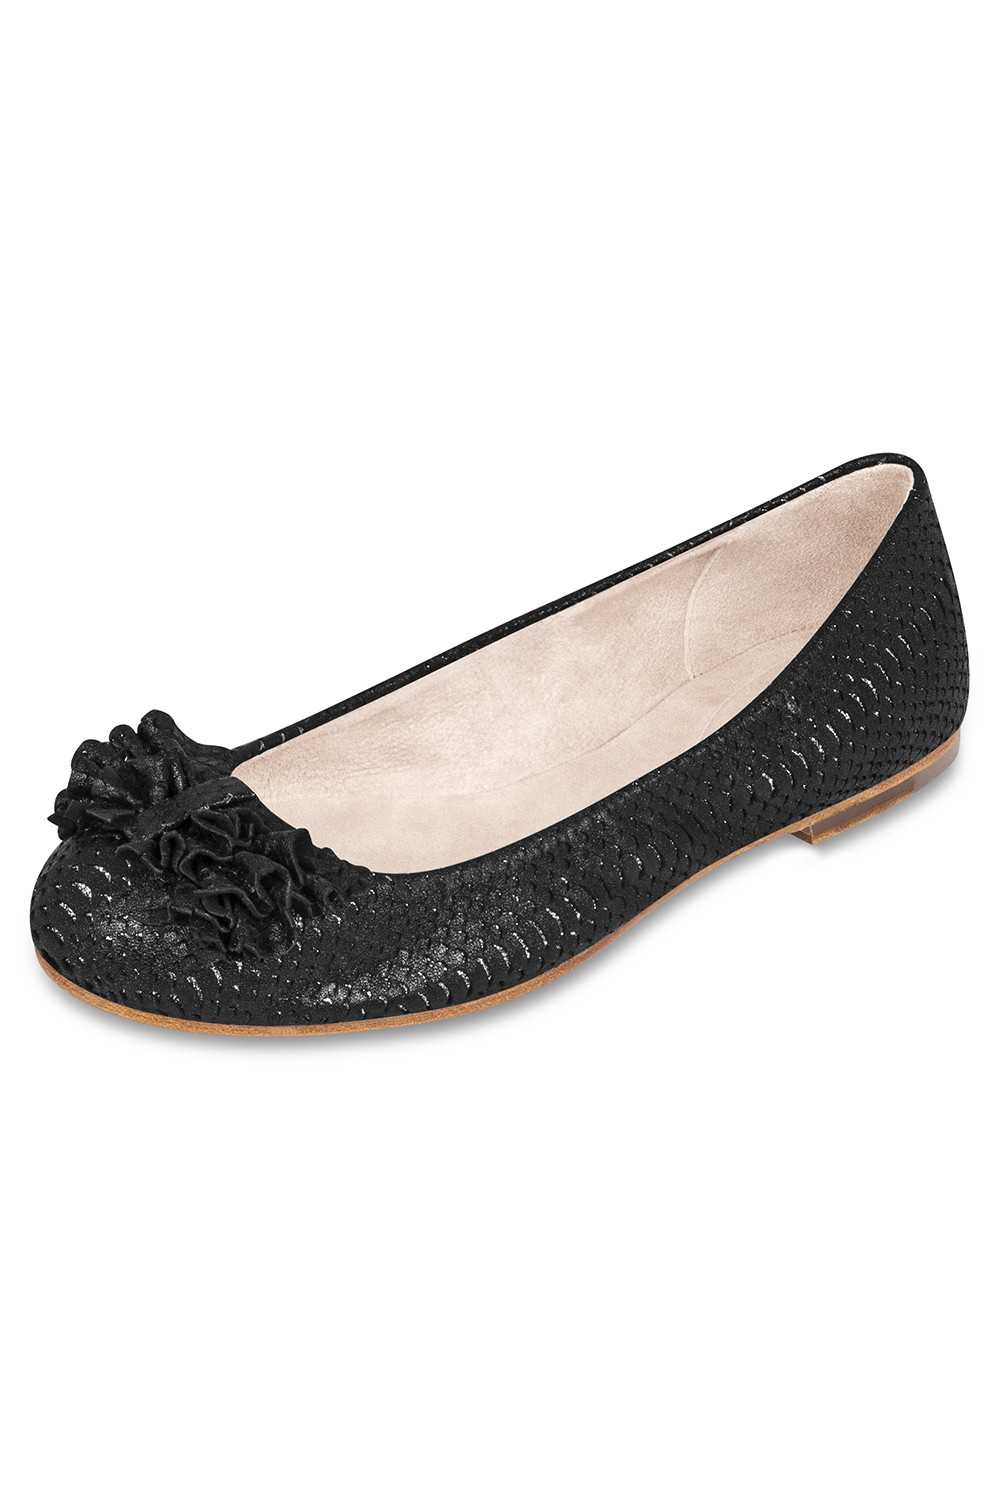 Marianna Ladies Ballet Flat Womens Fashion Shoes